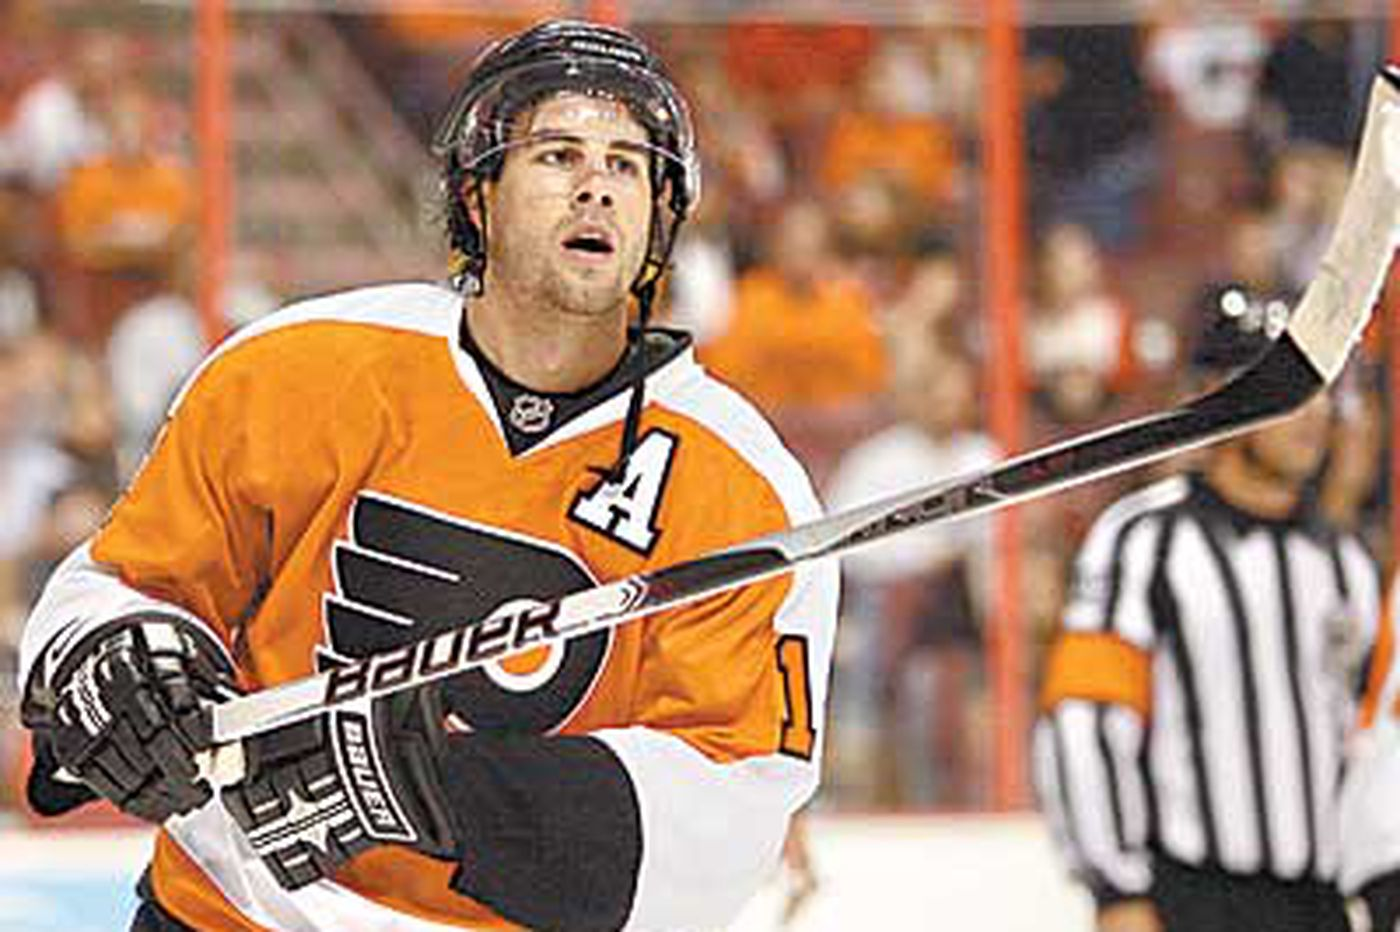 Gagne back for Flyers; missed 24 games after surgery